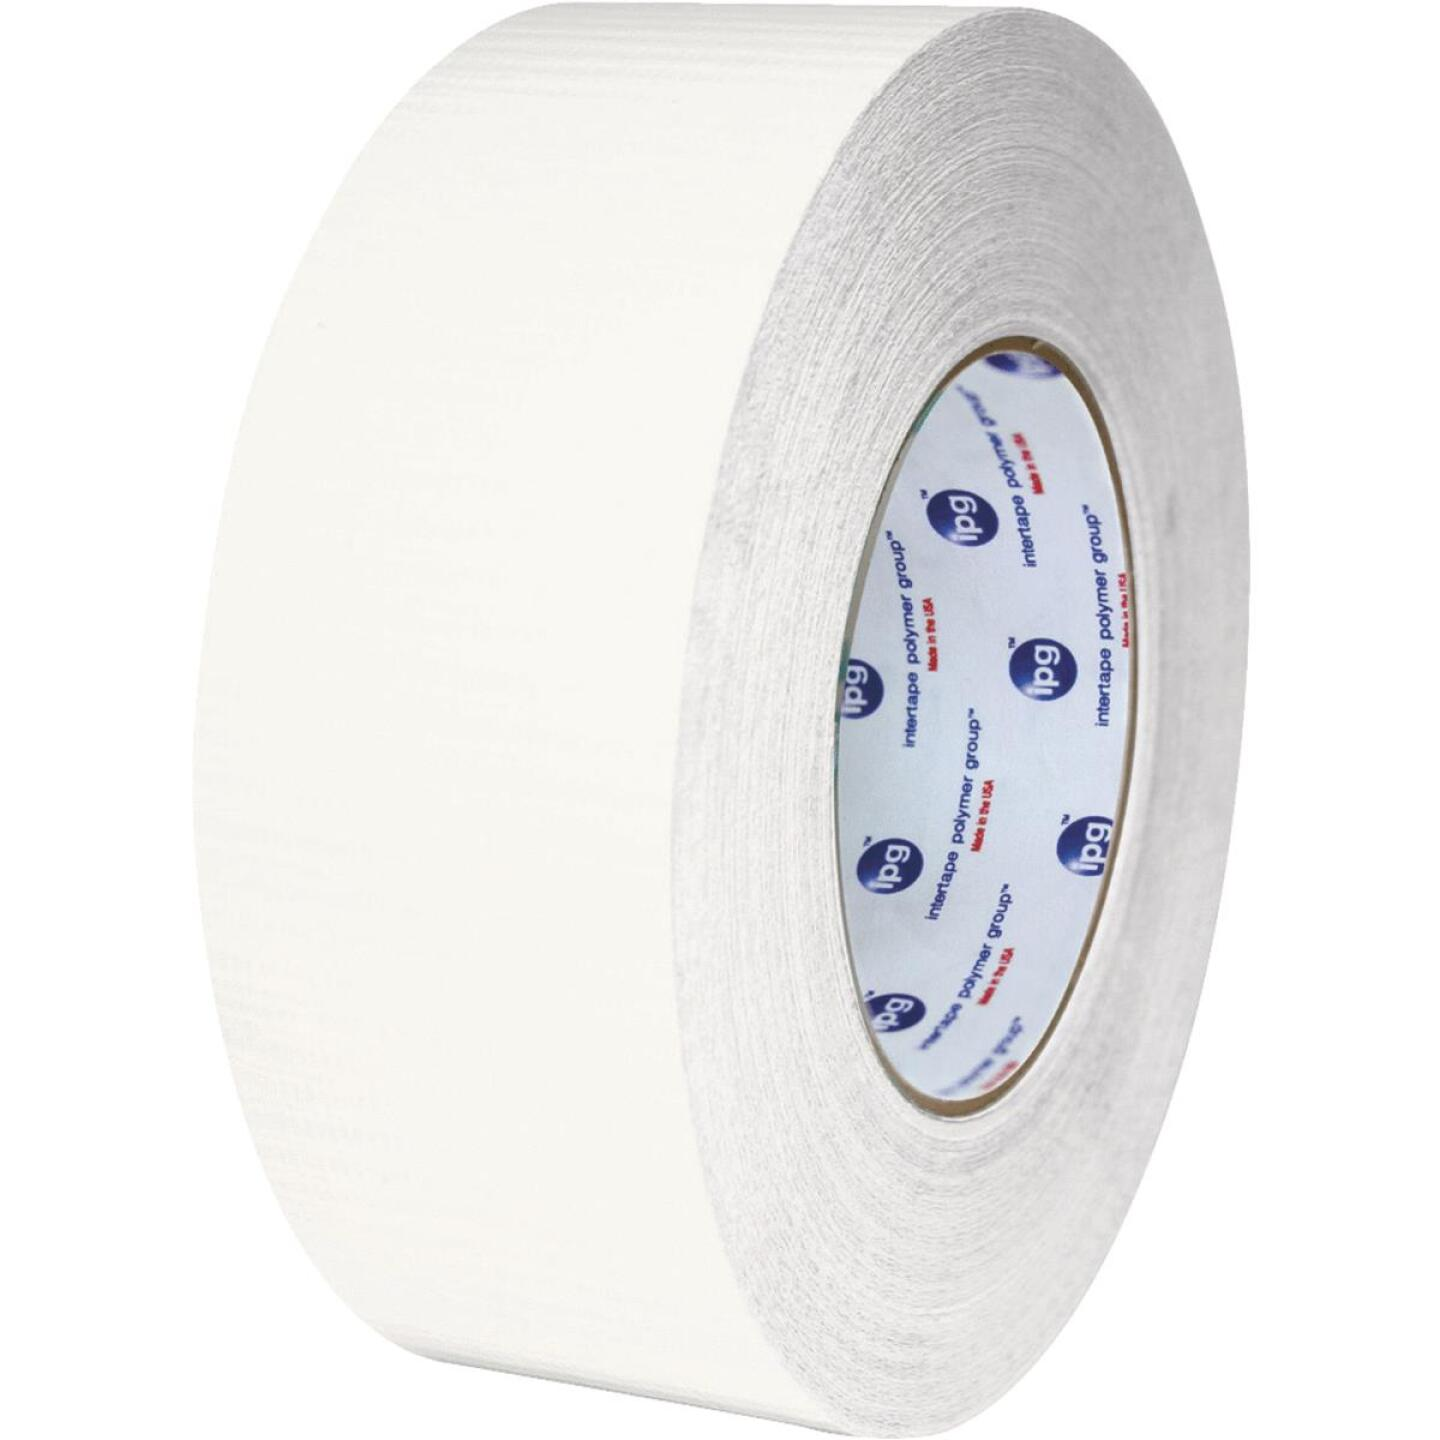 Intertape DUCTape 1.88 In. x 60 Yd. General Purpose Duct Tape, White Image 1